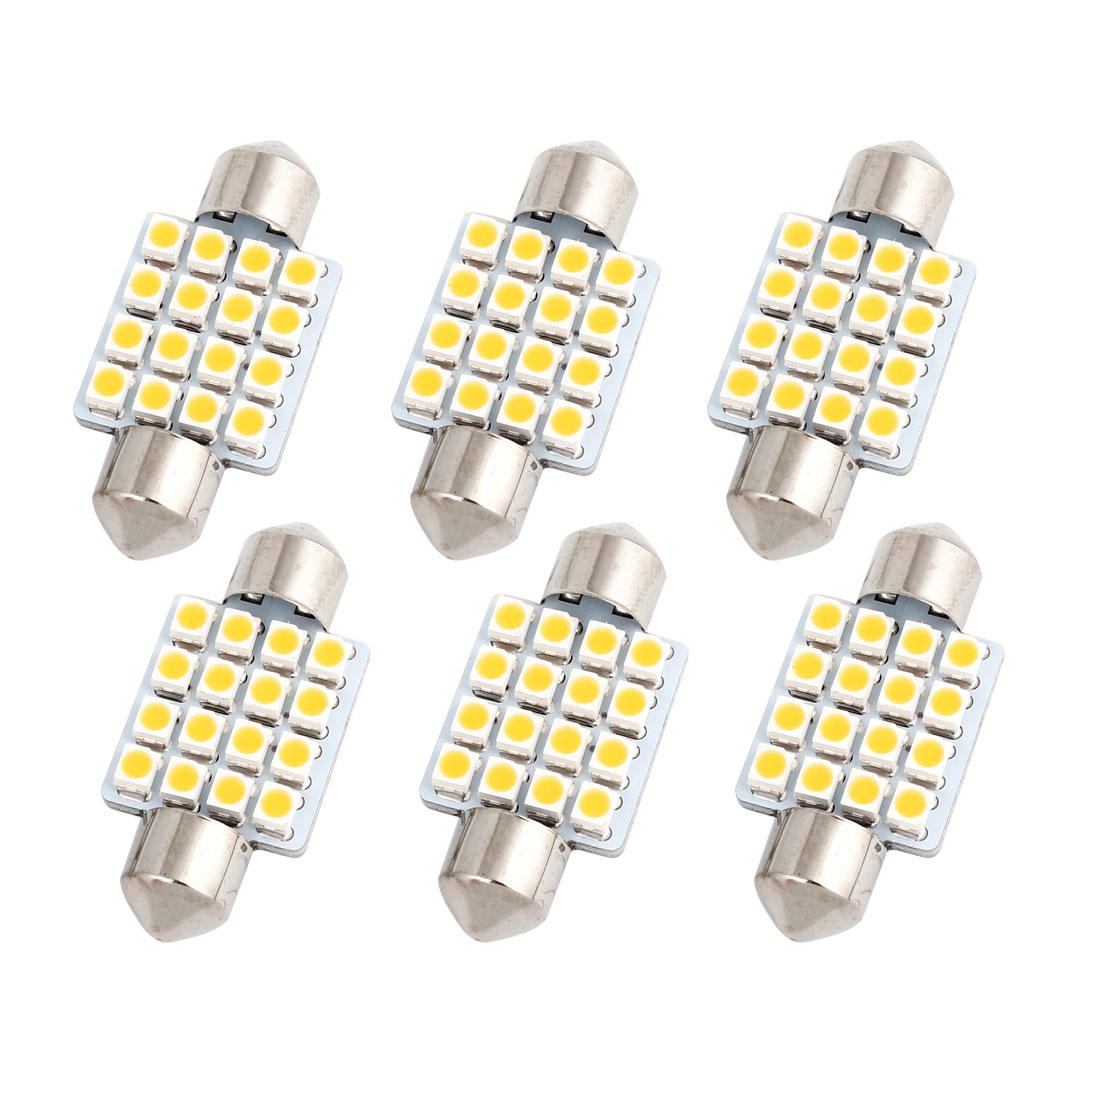 6pcs 36mm 3528 SMD 16-LED Festoon Map Reading Light Warm White DE3425 Internal